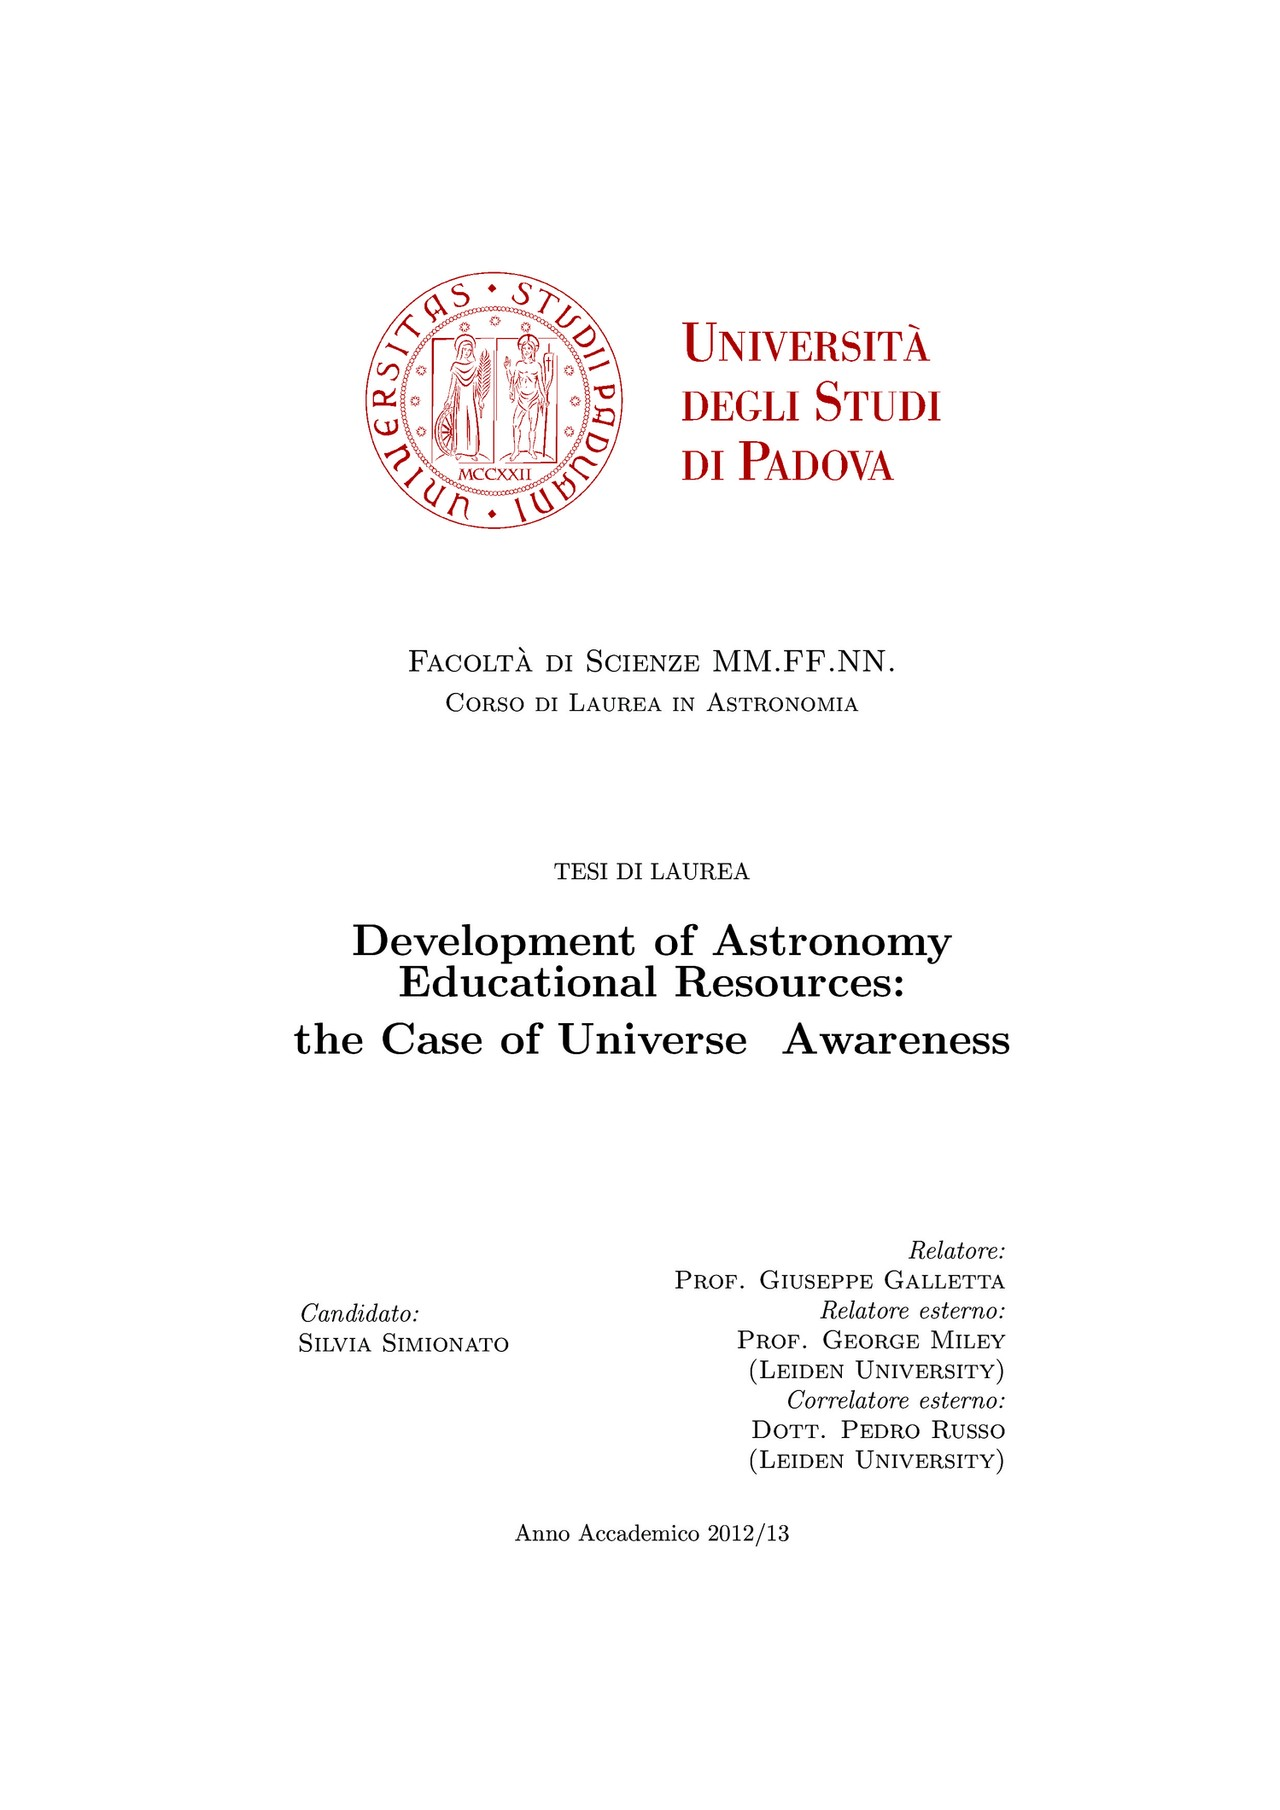 University of manitoba phd thesis